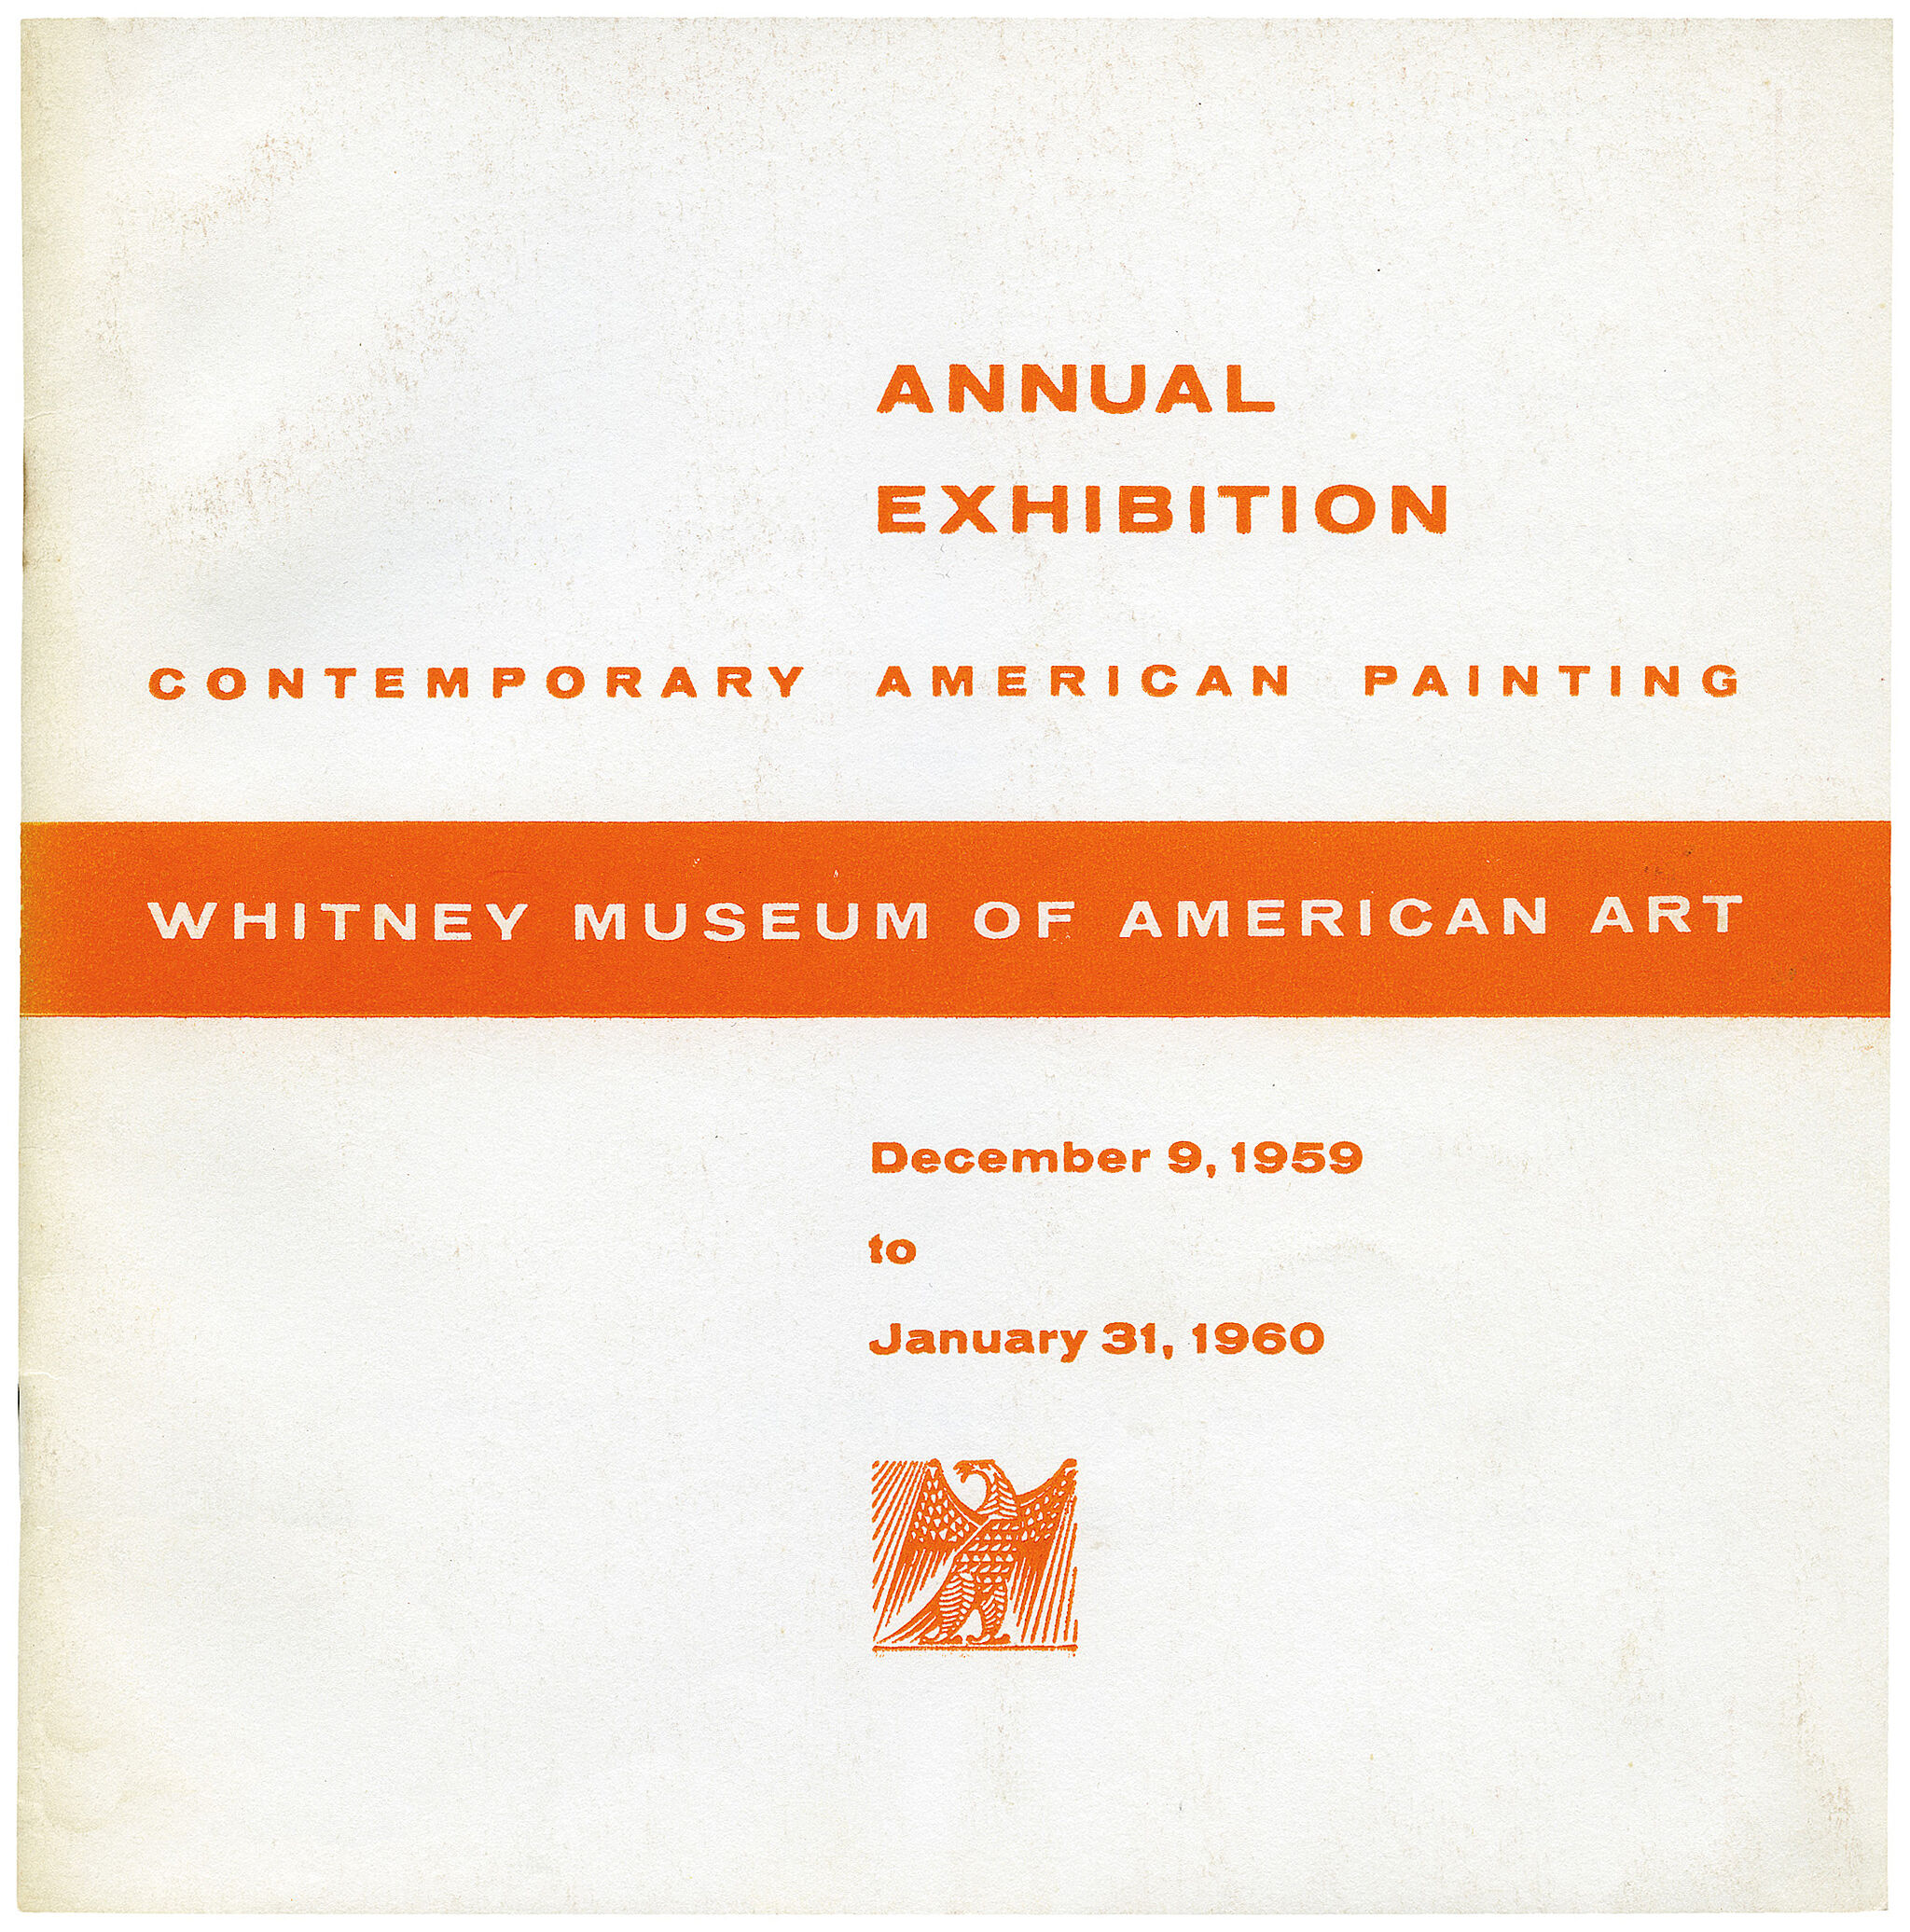 Cover for 1959 Annual Exhibition of Contemporary American Painting catalogue